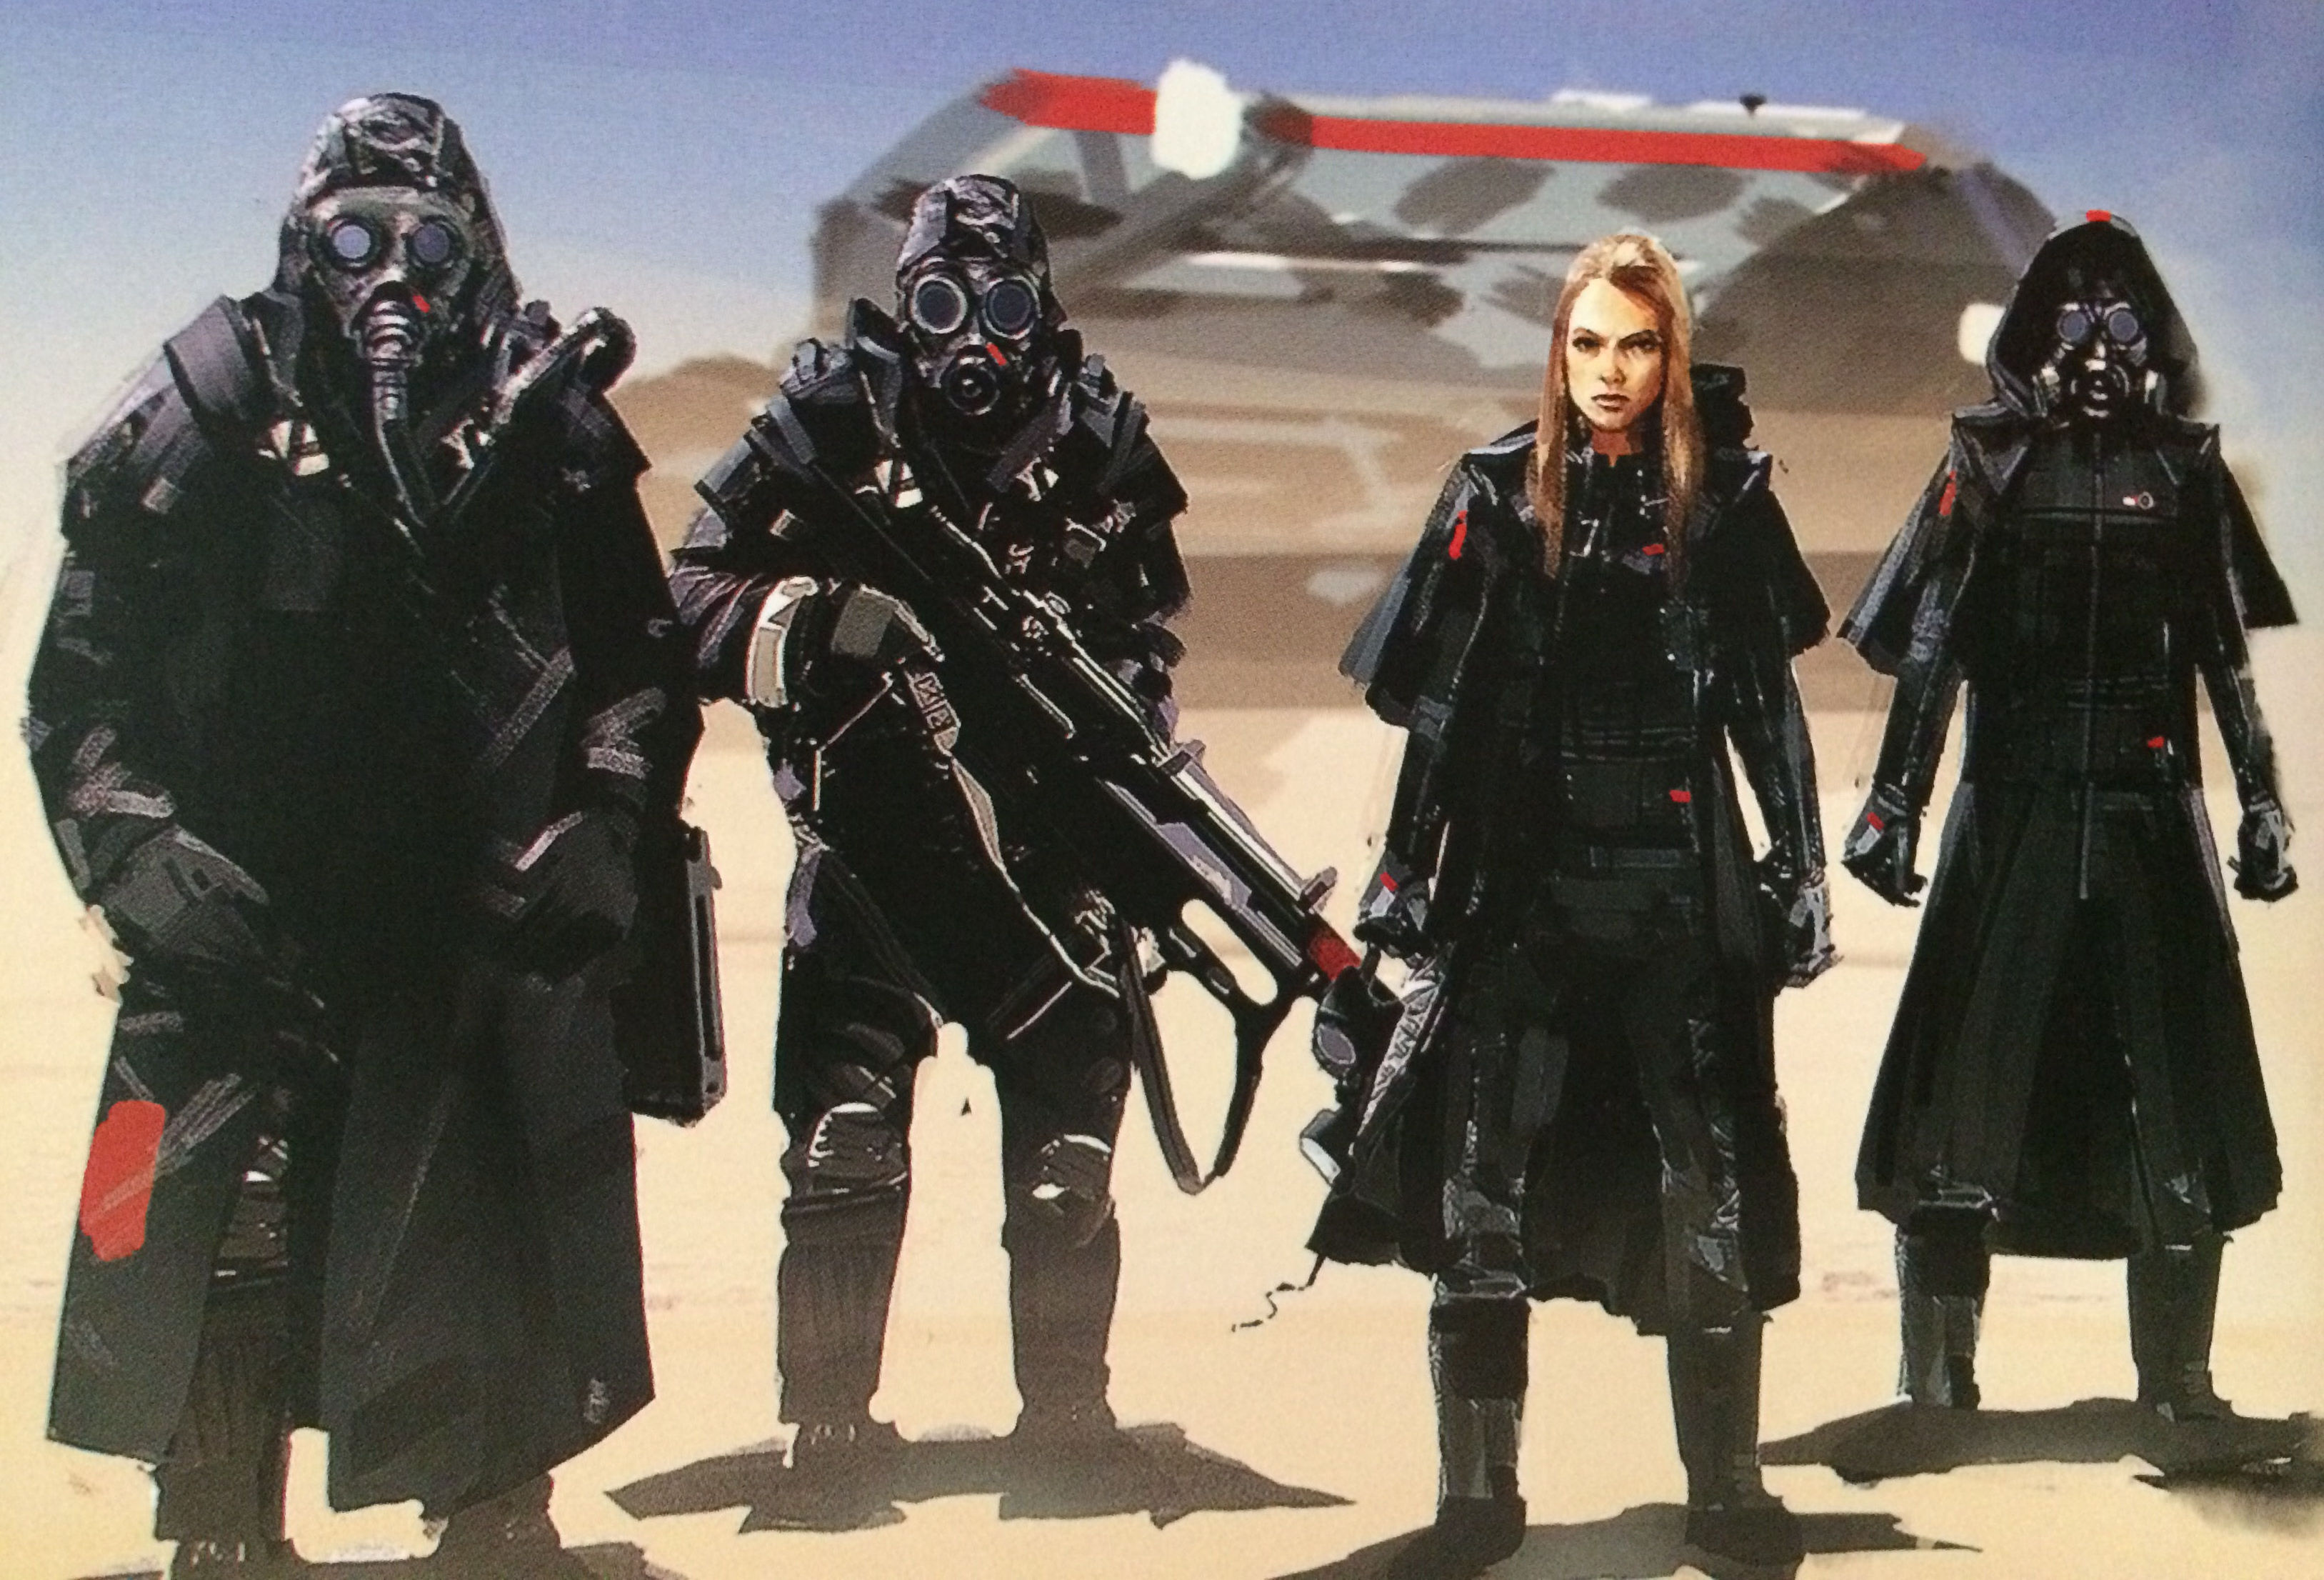 Homeworld Deserts of Kharak Collector's Edition Concept Art - Gaalsien Desert Troop Concepts